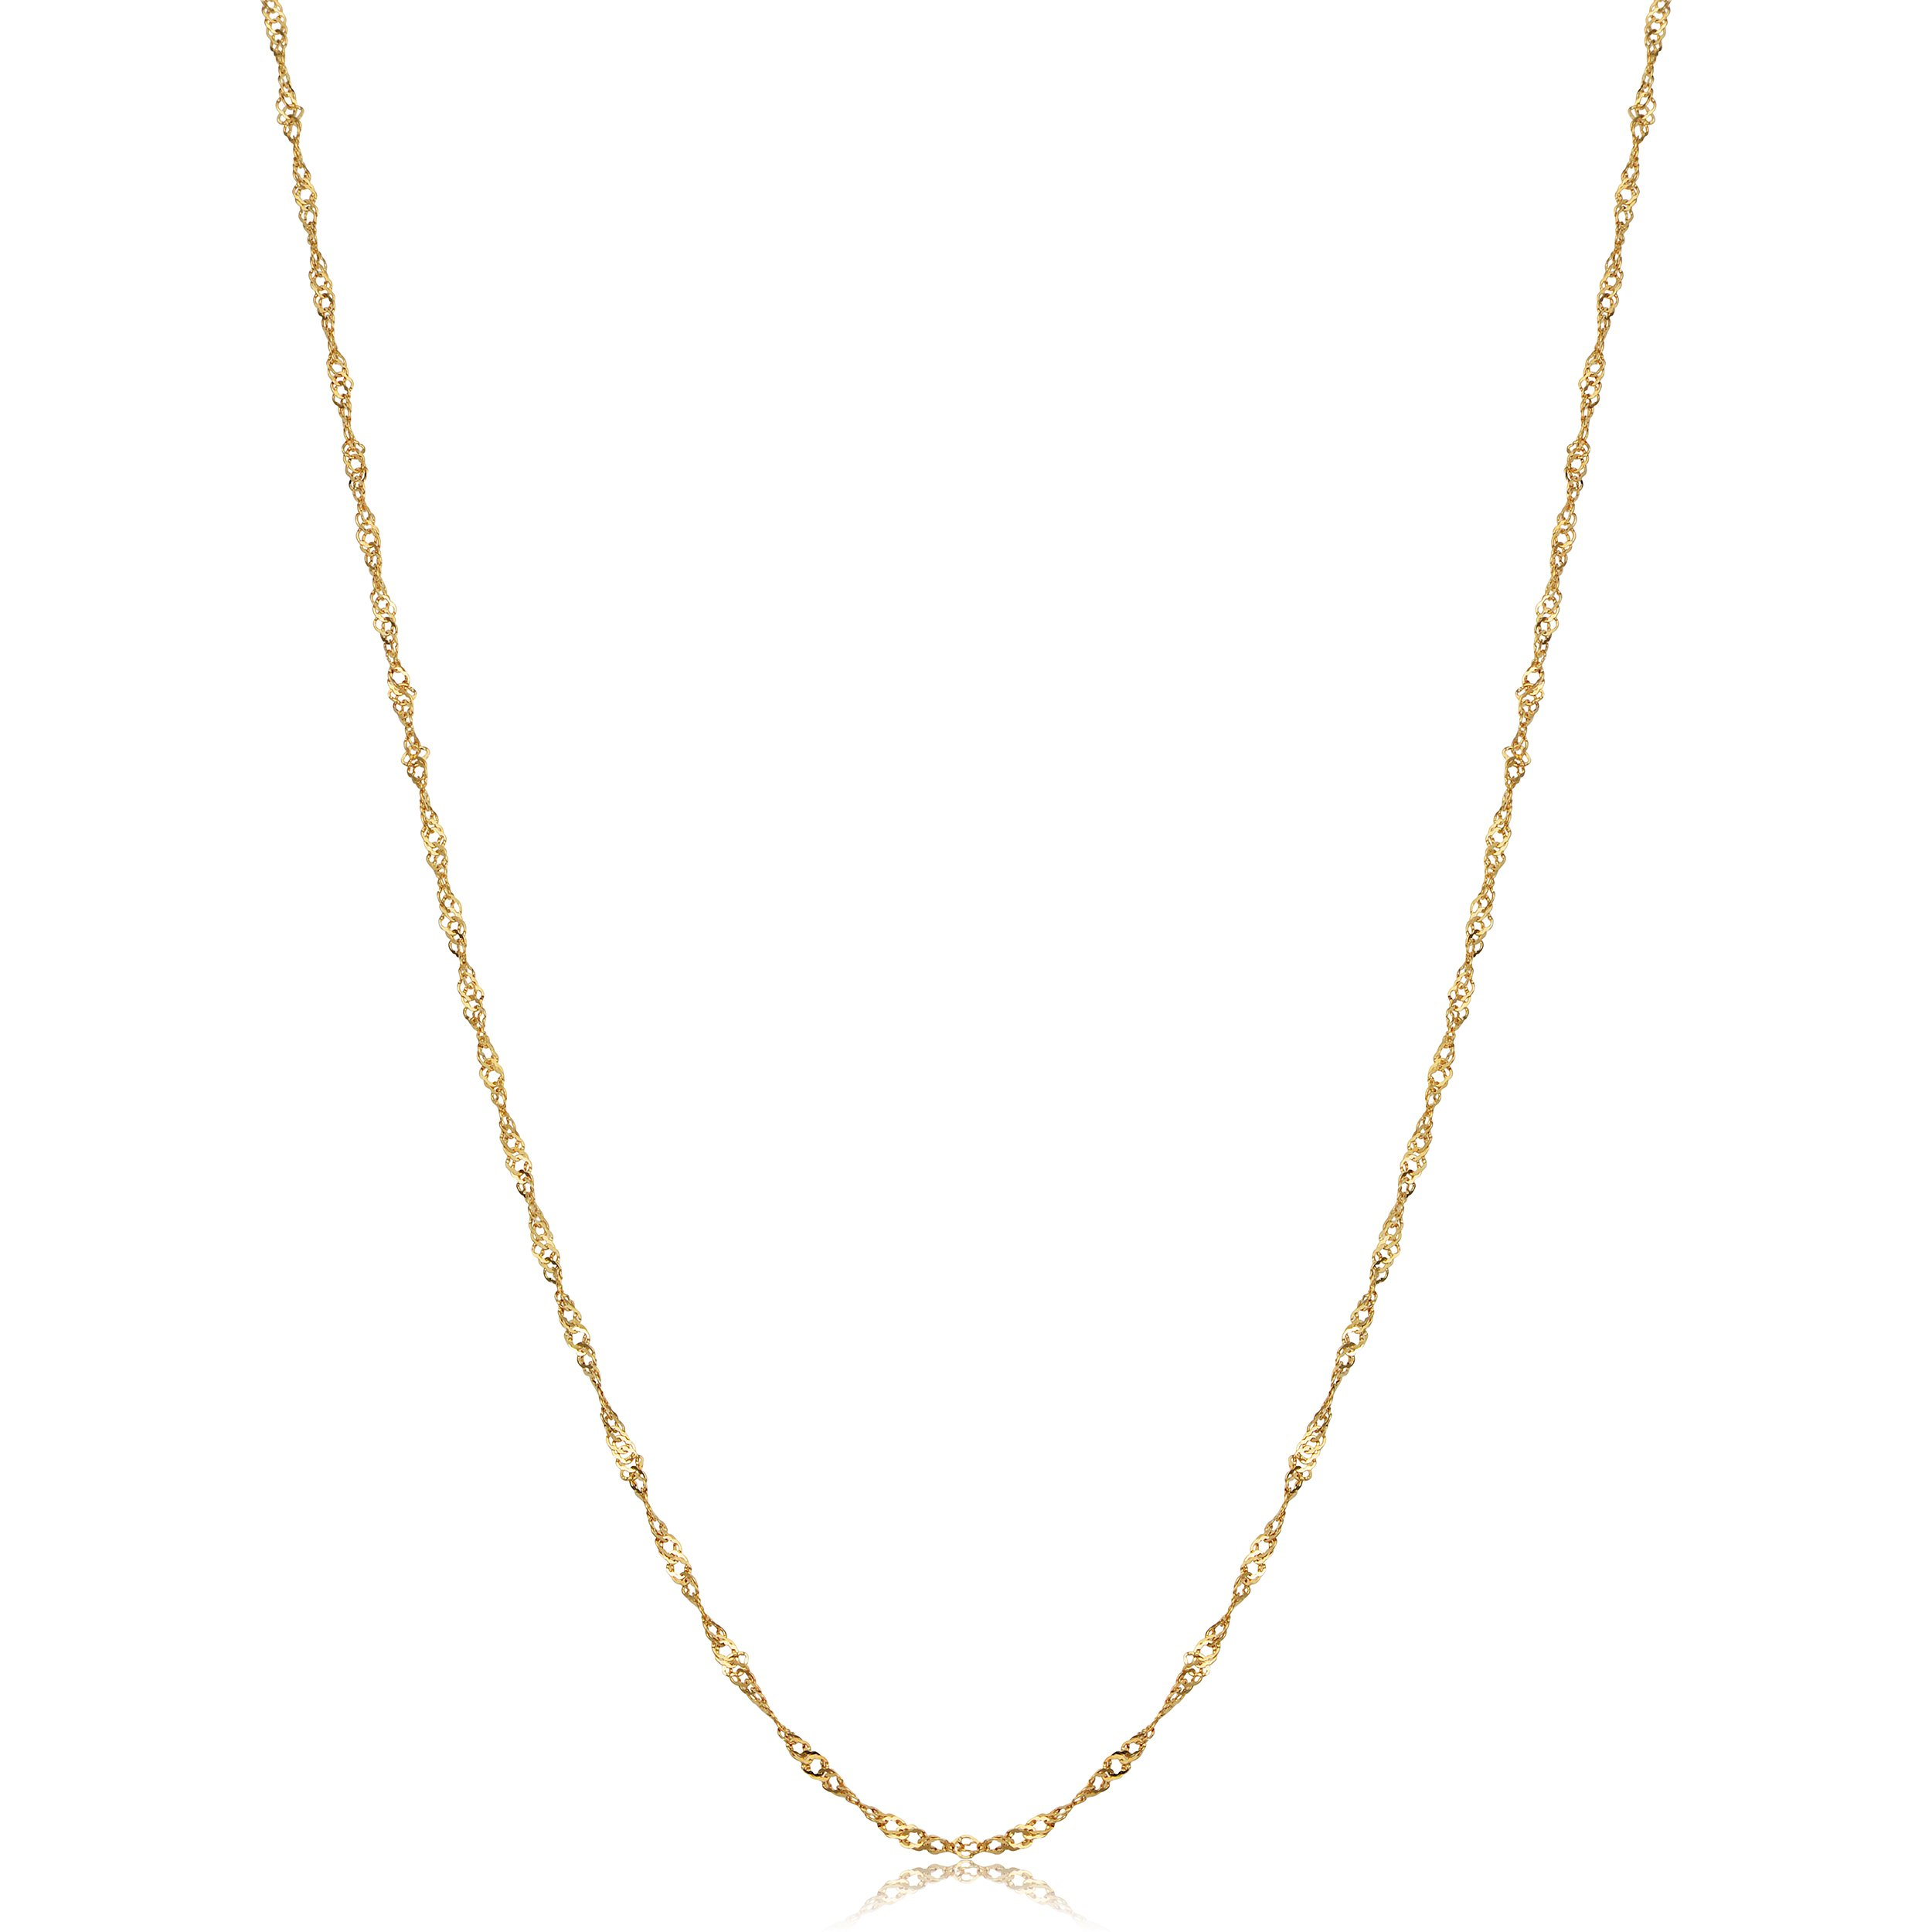 Solid 10k Yellow Gold Dainty Singapore Chain Necklace (0.85mm, 20 inch)